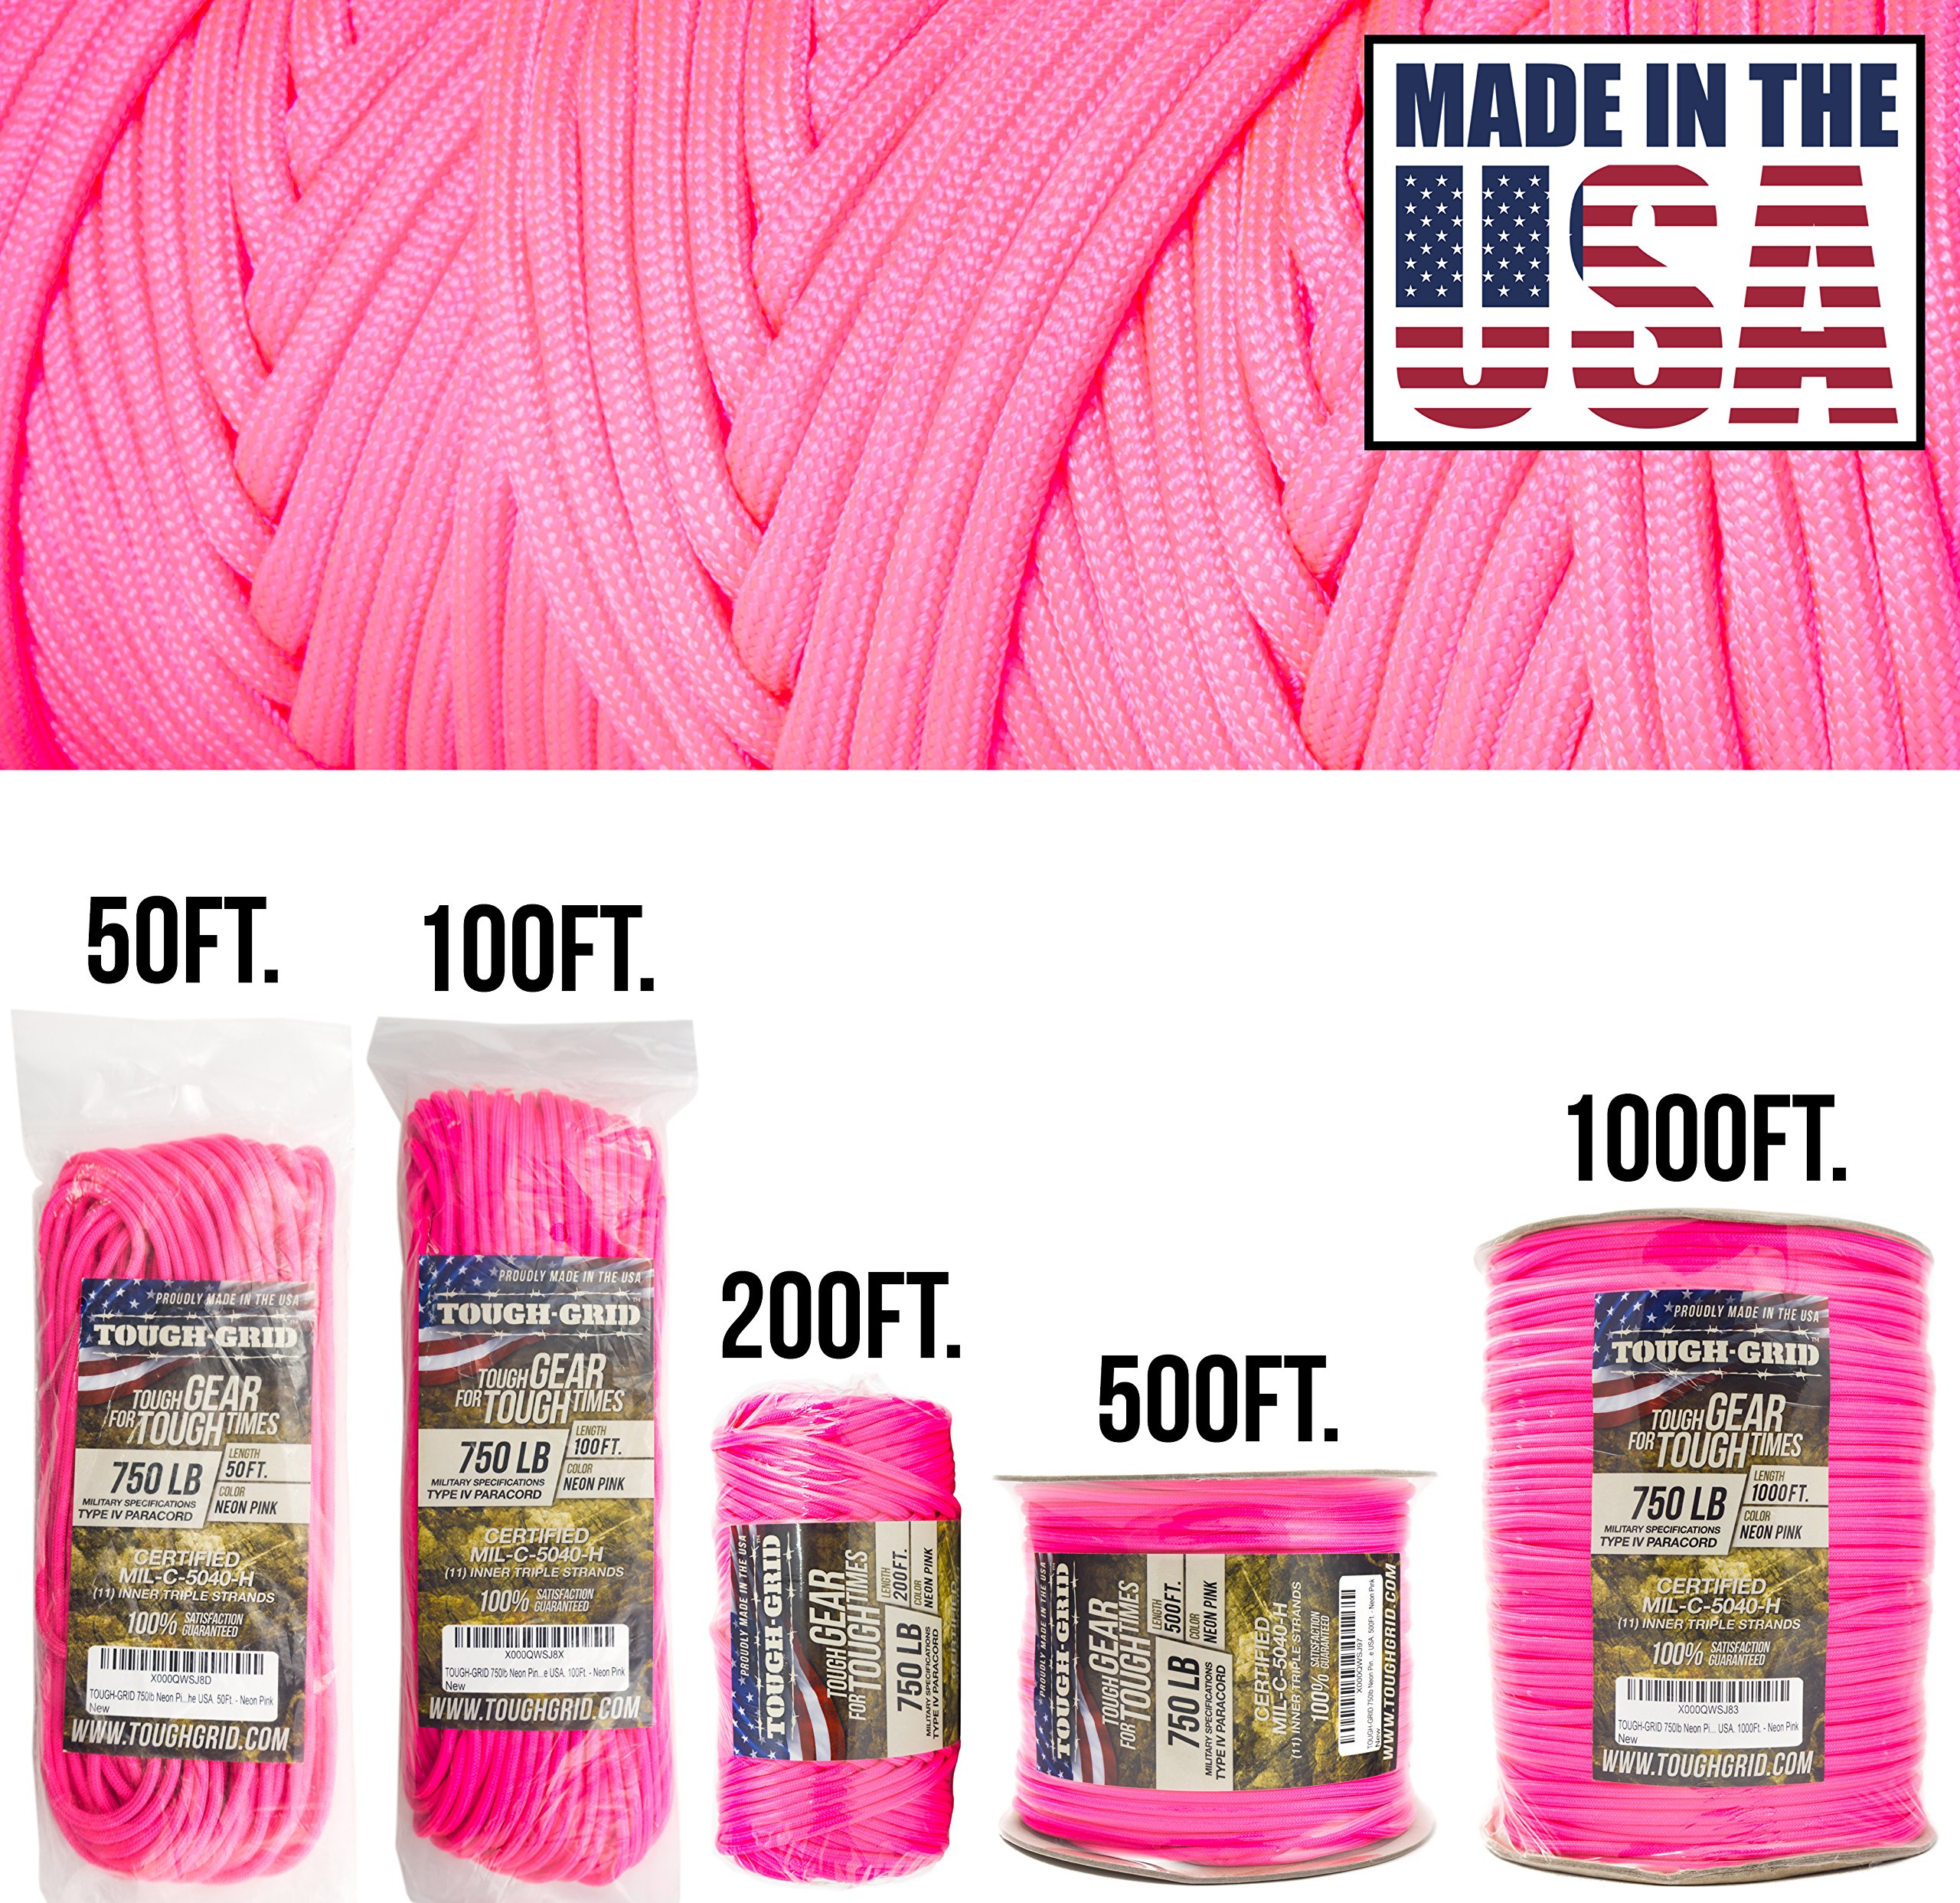 TOUGH-GRID 750lb Paracord Parachute Cord - Genuine Mil Spec Type IV 750lb  Paracord Used by The US Military (MIl-C-5040-H) - 100% Nylon - Made in The  USA. 8498ec7721271